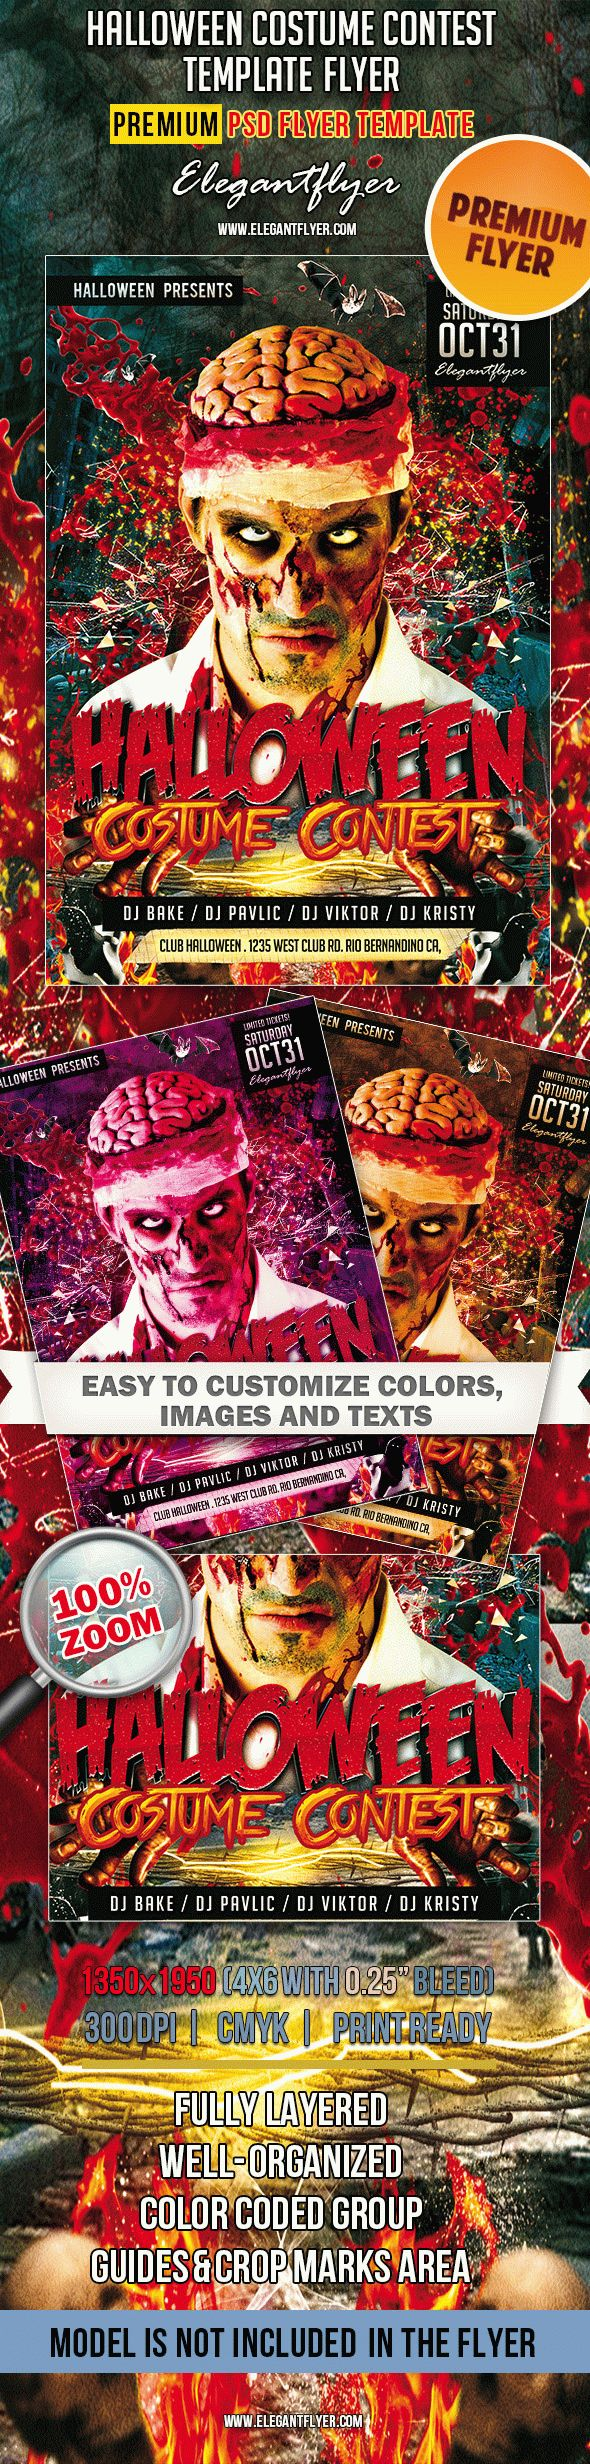 Halloween Costume Contest – Premium Club flyer PSD Template